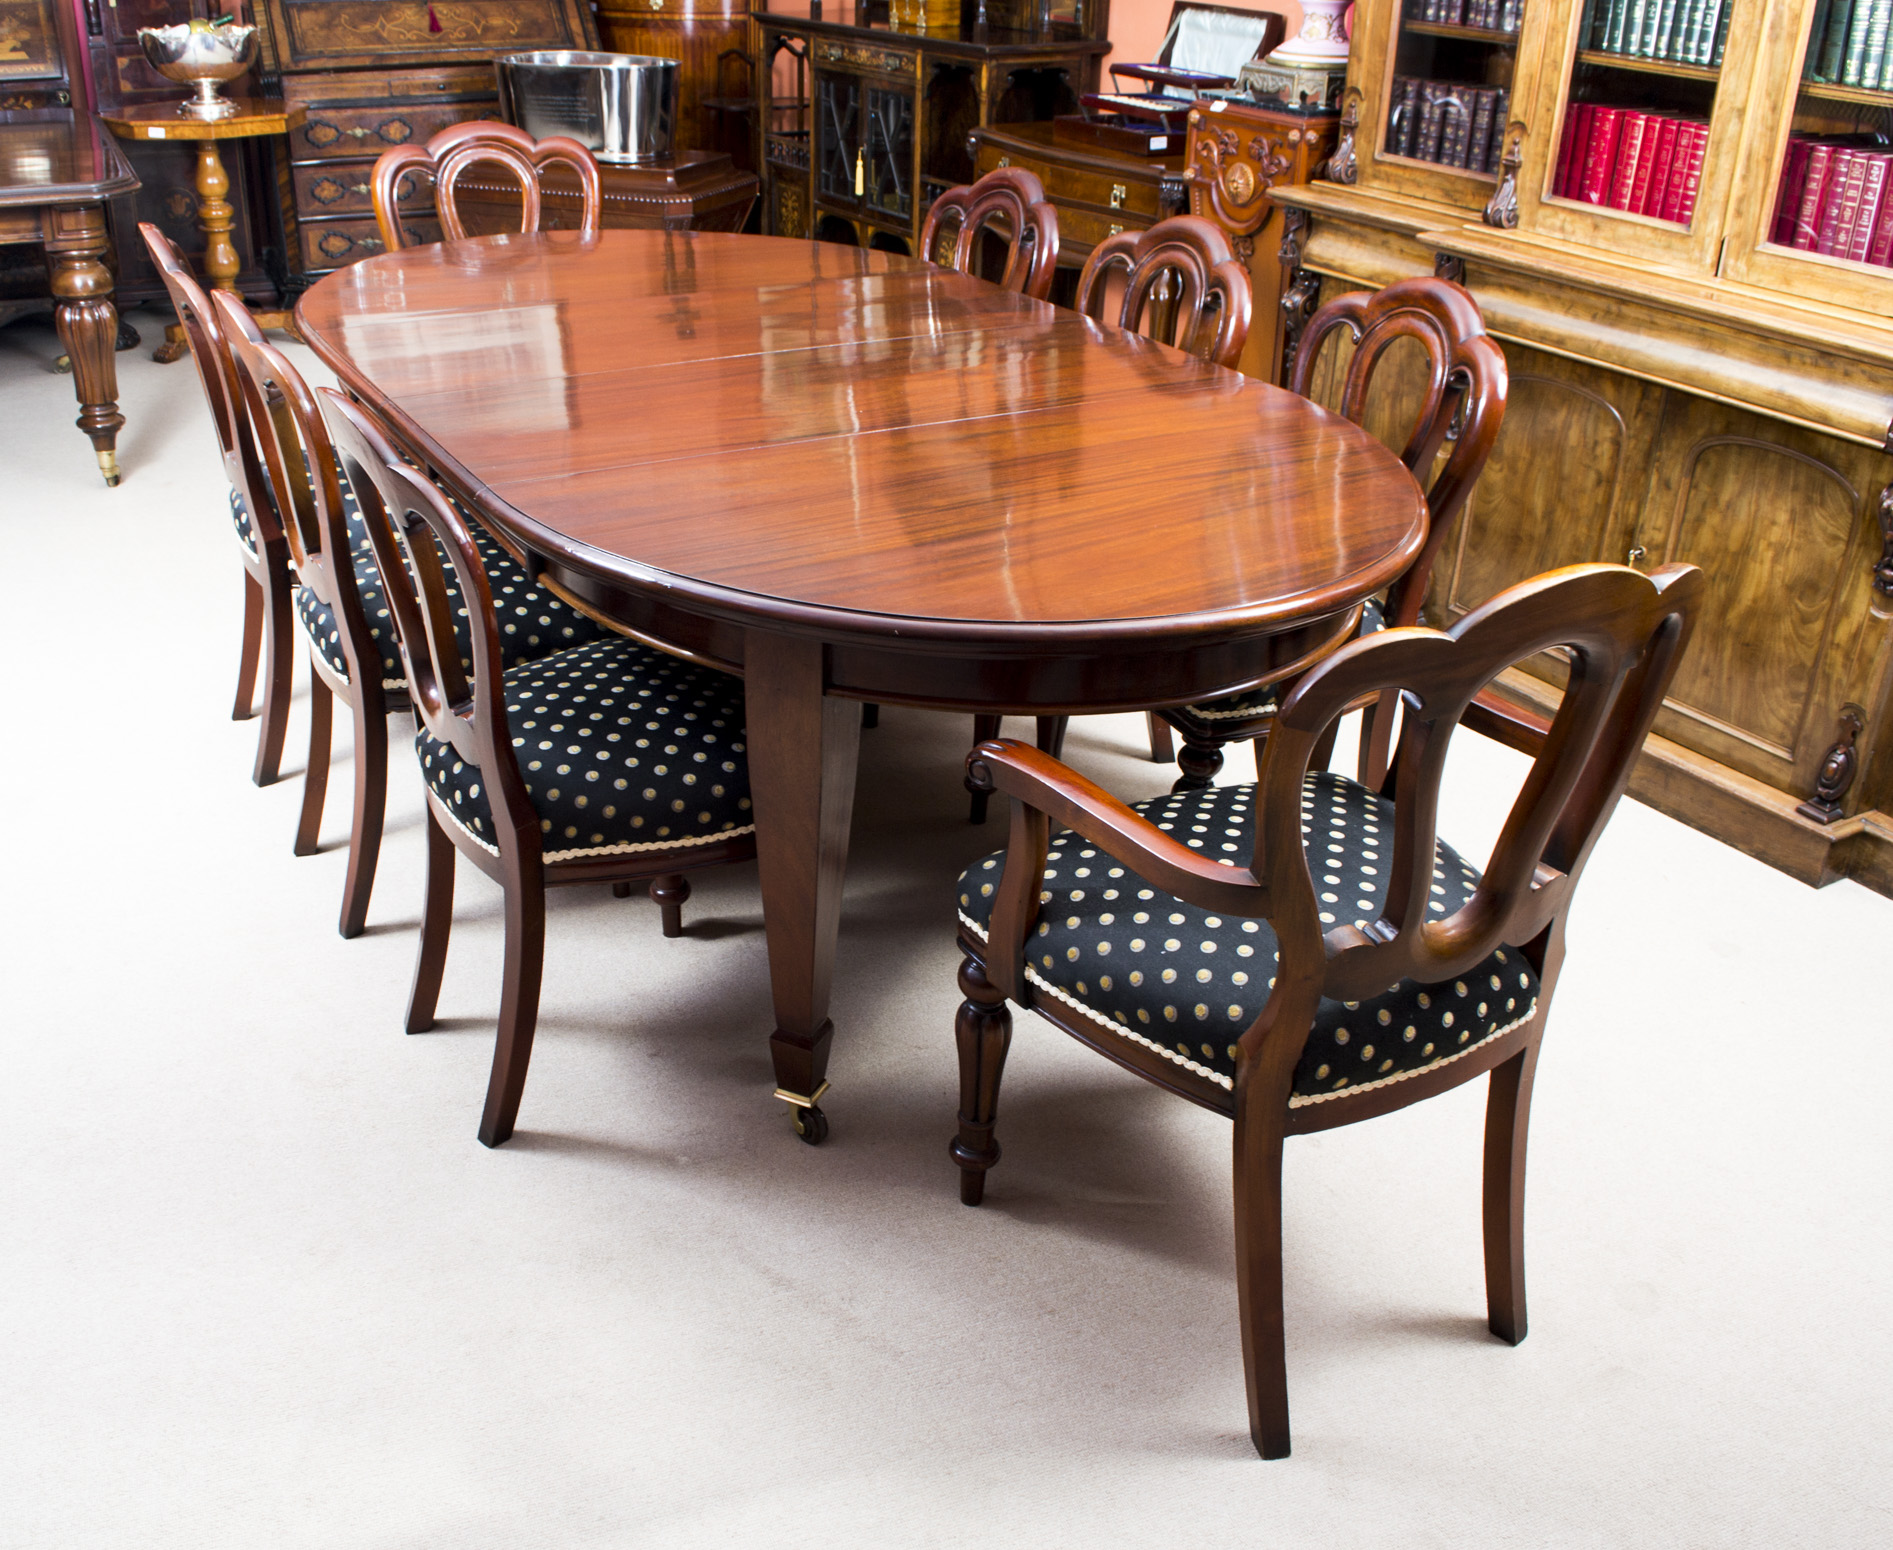 antique 8ft edwardian dining table 8 chairs ref no 07099b regent antiques. Black Bedroom Furniture Sets. Home Design Ideas